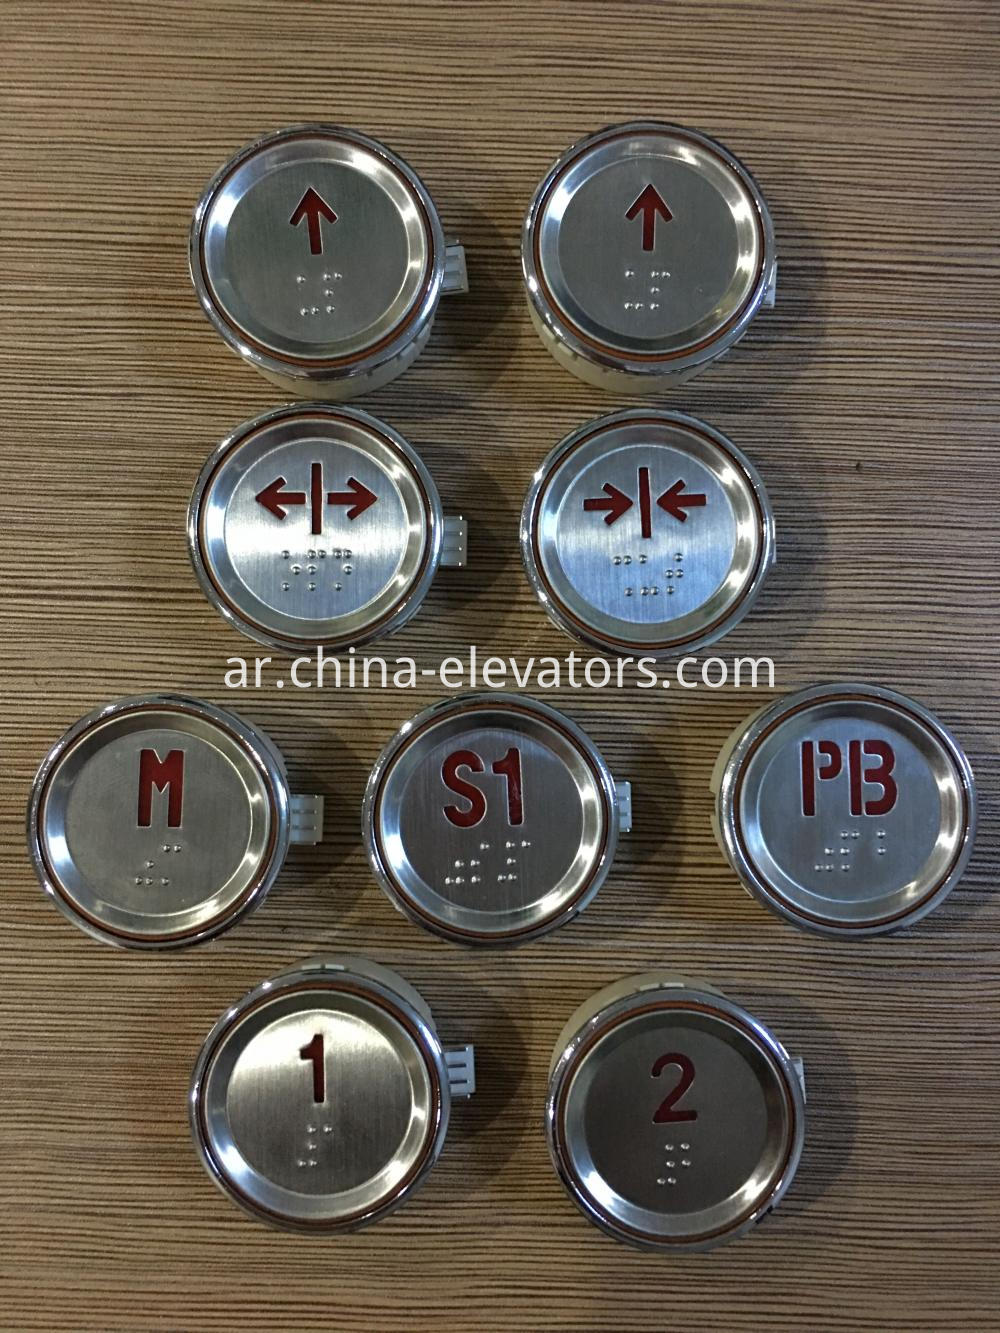 Push Buttons for LG Sigma Elevators